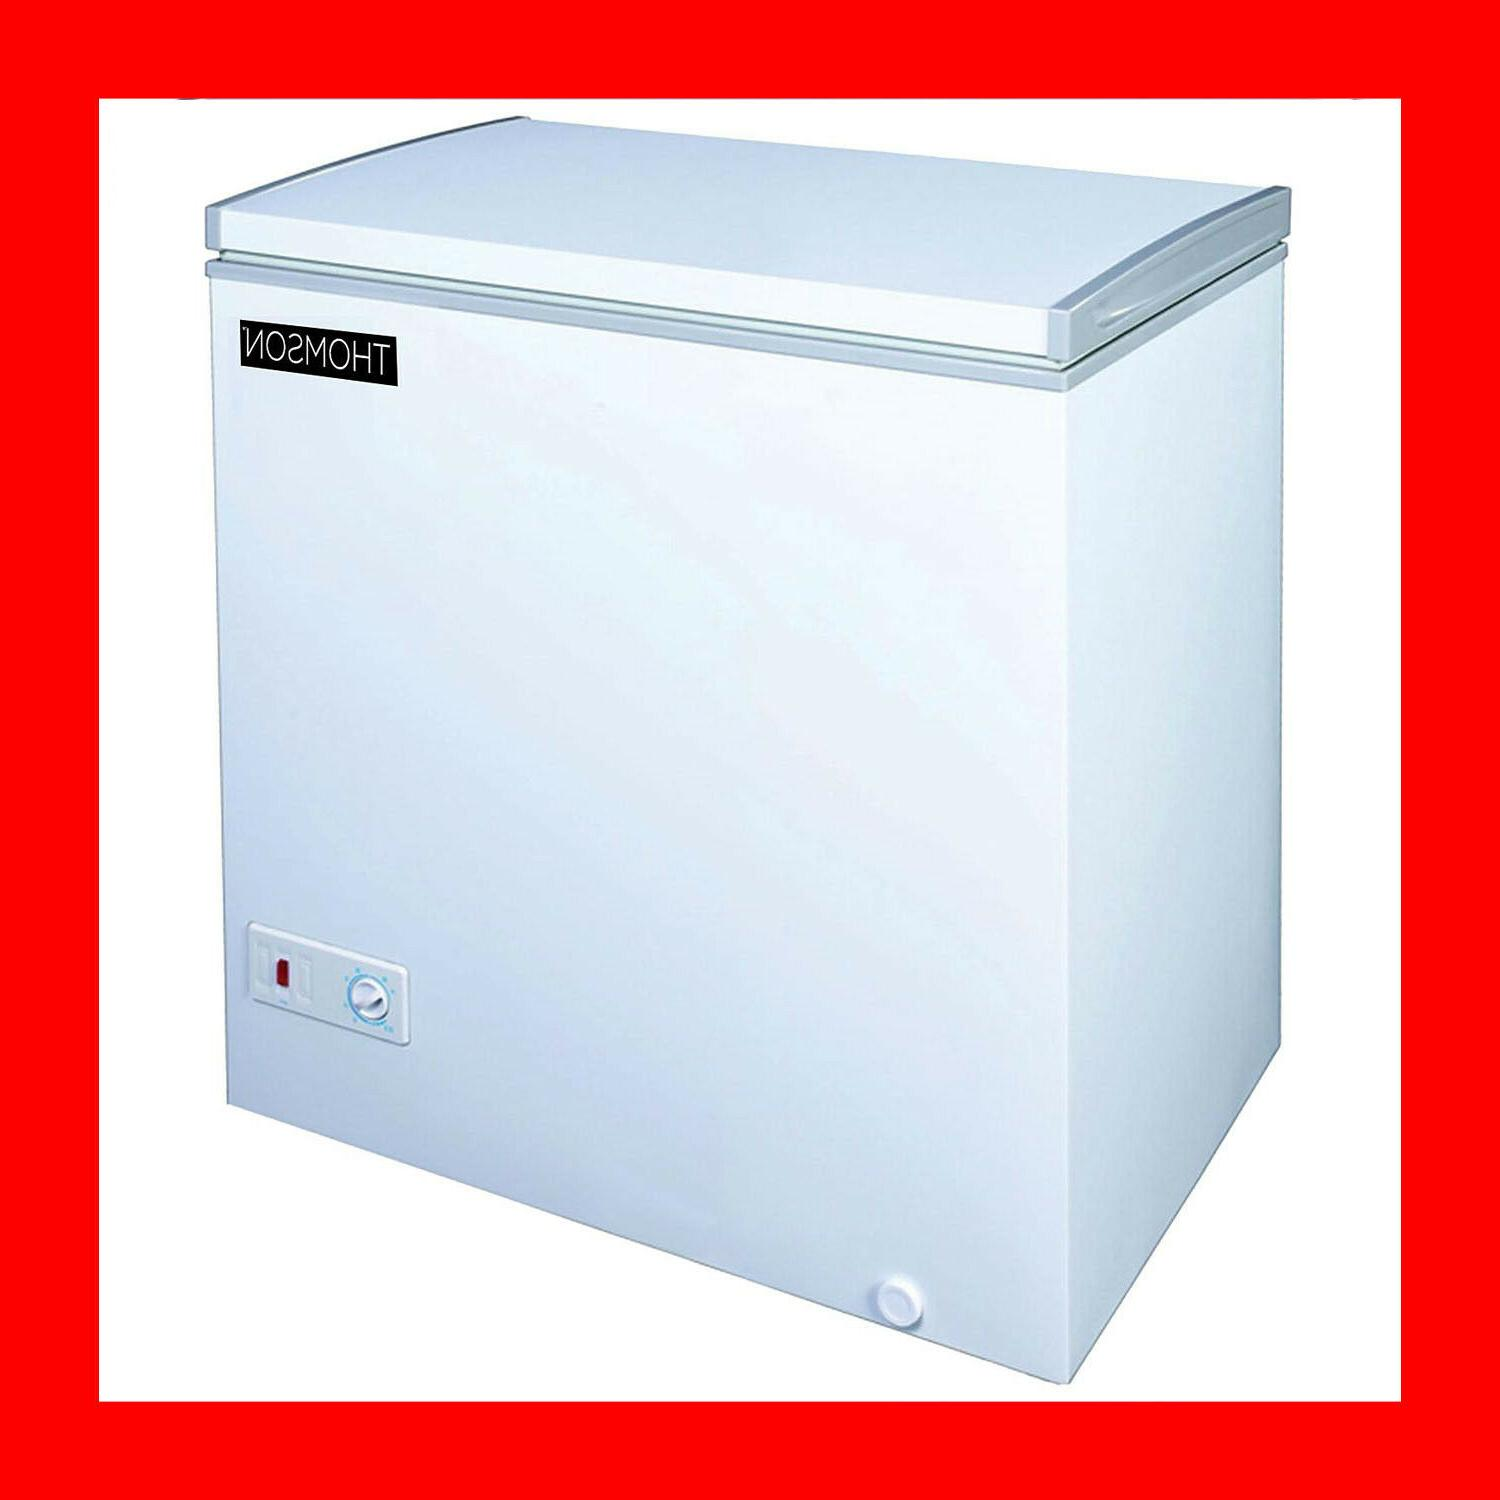 new chest freezer 7 0 cu ft